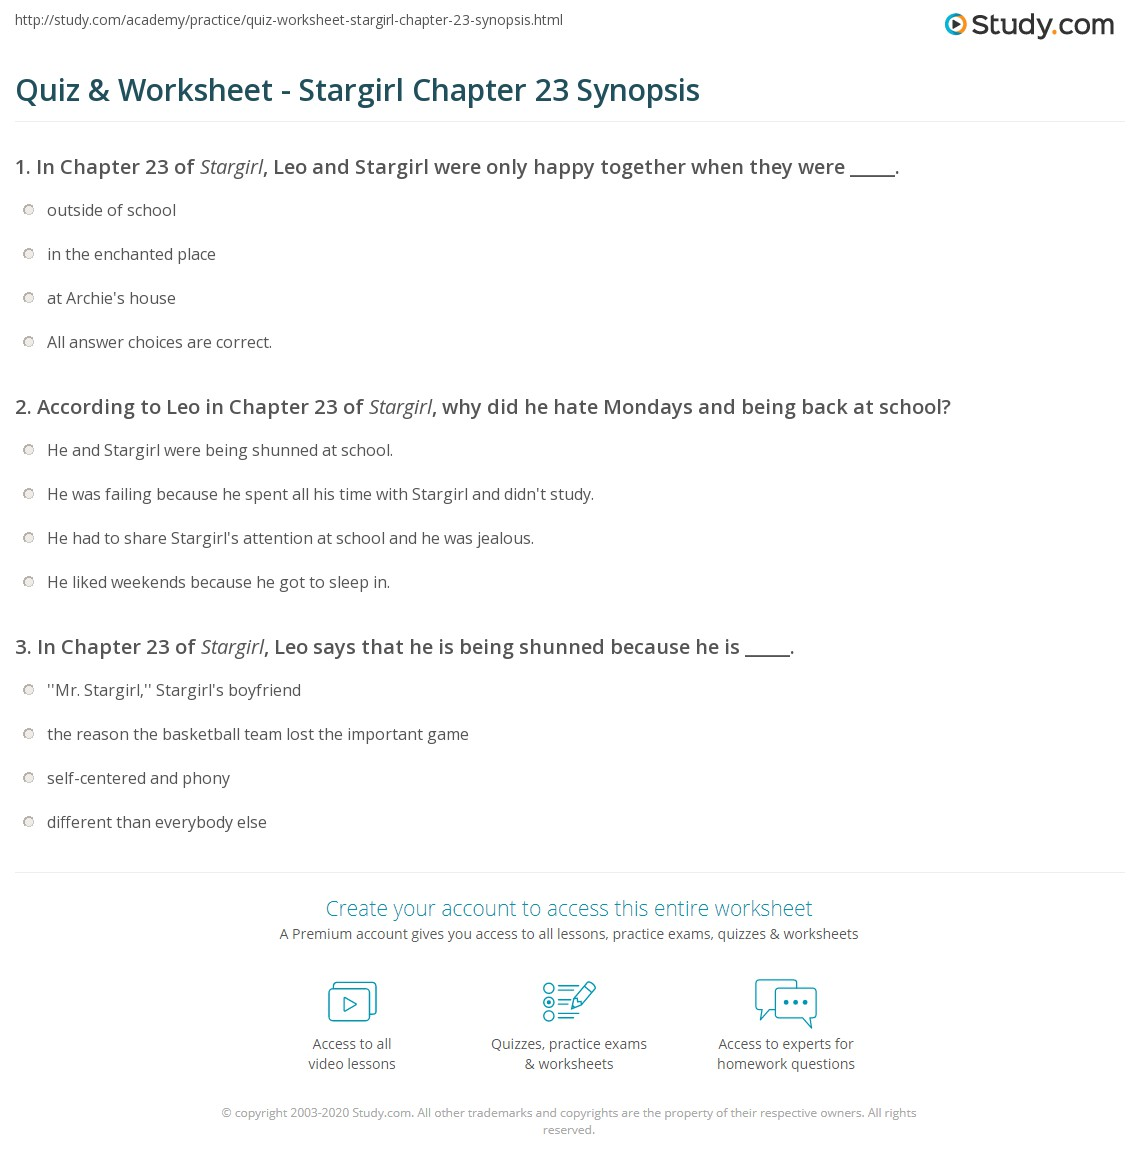 quiz worksheet stargirl chapter 23 synopsis study com rh study com Great Expectations Study Guide Questions Great Expectations Study Guide Questions